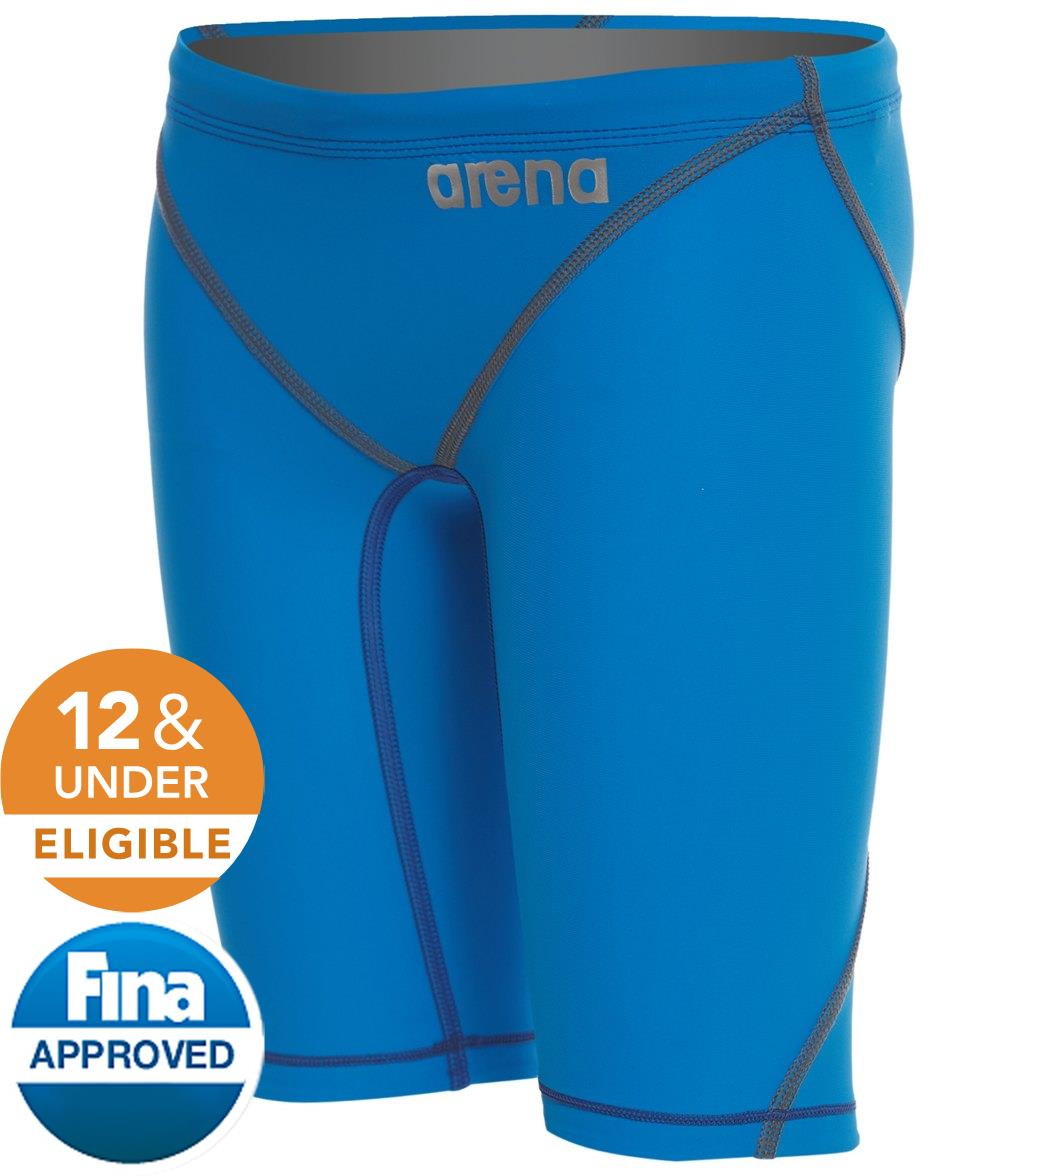 6523bbd8c932f Arena Boys' Powerskin ST 2.0 Jammer Tech Suit Swimsuit at SwimOutlet.com -  Free Shipping